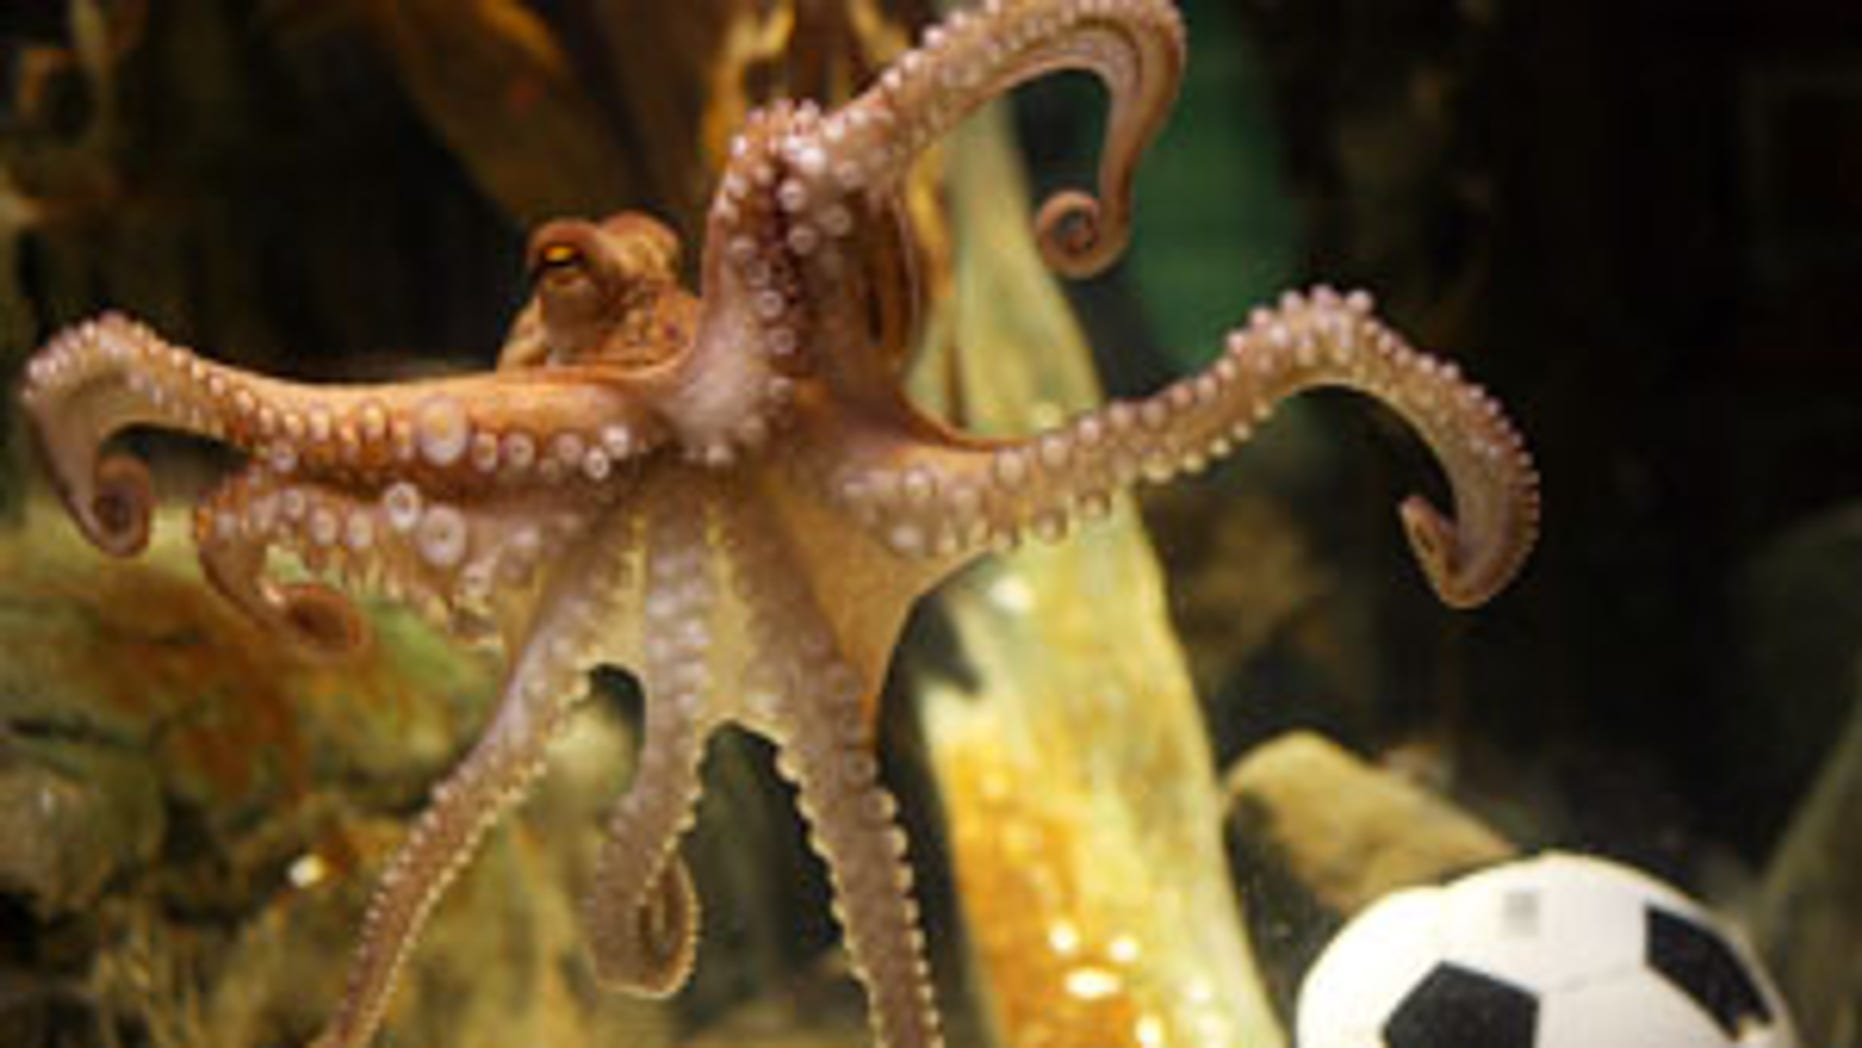 """An octopus named Paul swims past a football in his aquarium on July 9, 2010 at the Sea Life aquarium in Oberhausen, western Germany. Paul, the """"psychic"""" octopus with a perfect prediction record, decided Spain will win the football World Cup for the first time in their history. The eight-legged oracle, who has become a World Cup sensation by correctly predicting all six Germany games, very quickly plumped for Spain  carried live on national German television.         AFP PHOTO / PATRIK STOLLARZ (Photo credit should read PATRIK STOLLARZ/AFP/Getty Images)"""